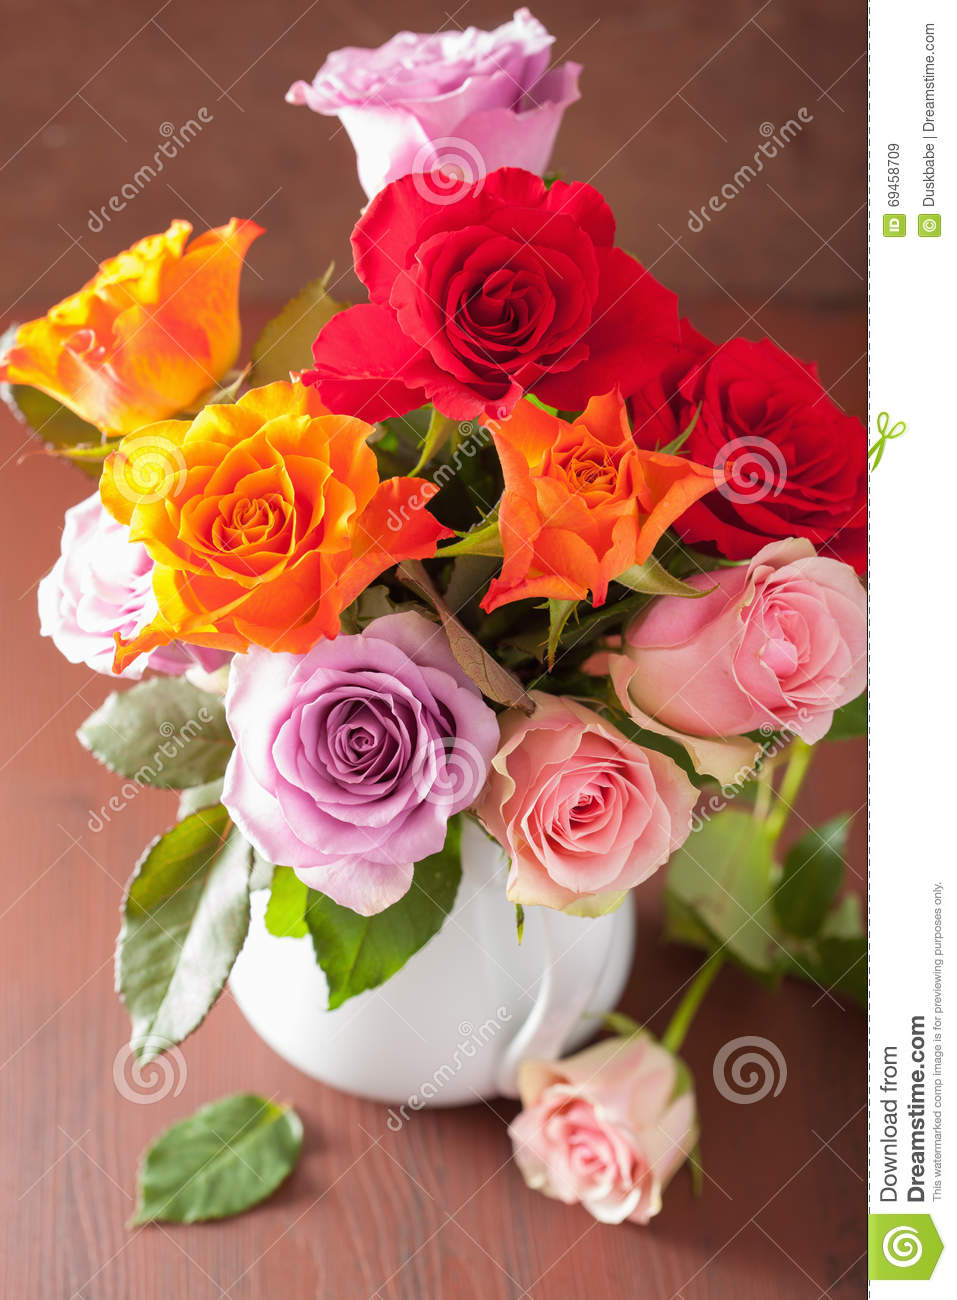 Beautiful Colorful Rose Flowers Bouquet In Vase Stock Image - Image ...